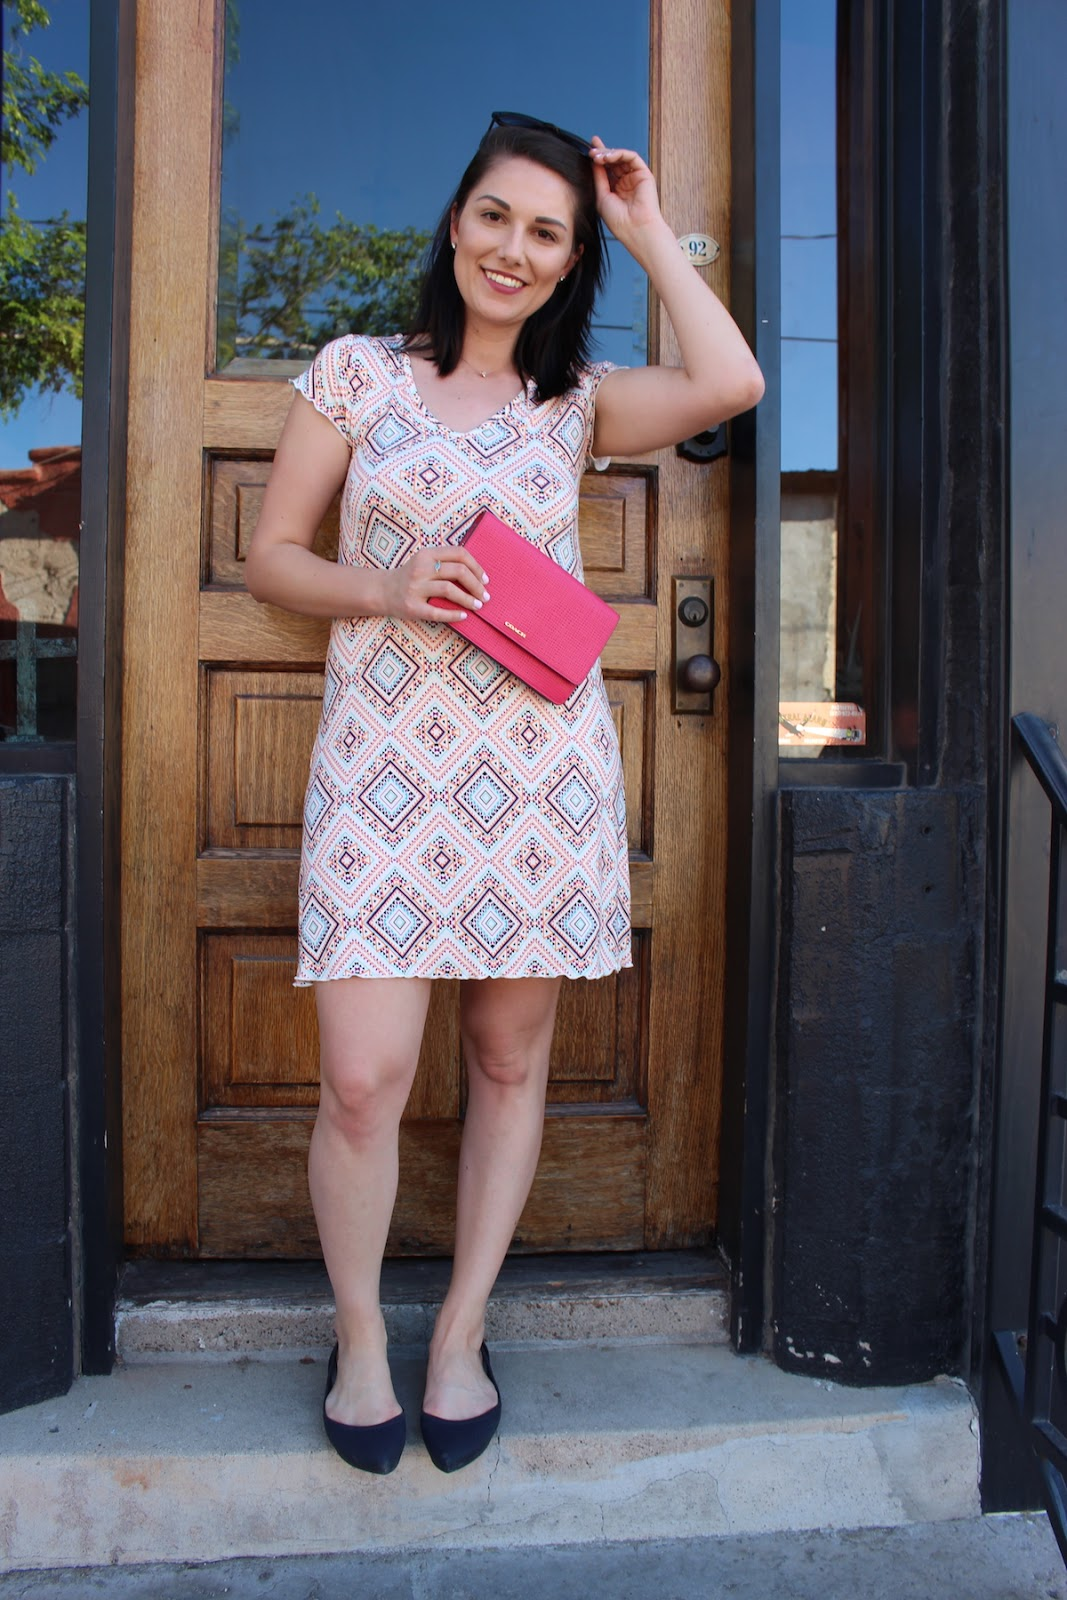 This is a close up of me wearing a Stitchfix white dress with many colors, holding a pink clutch.